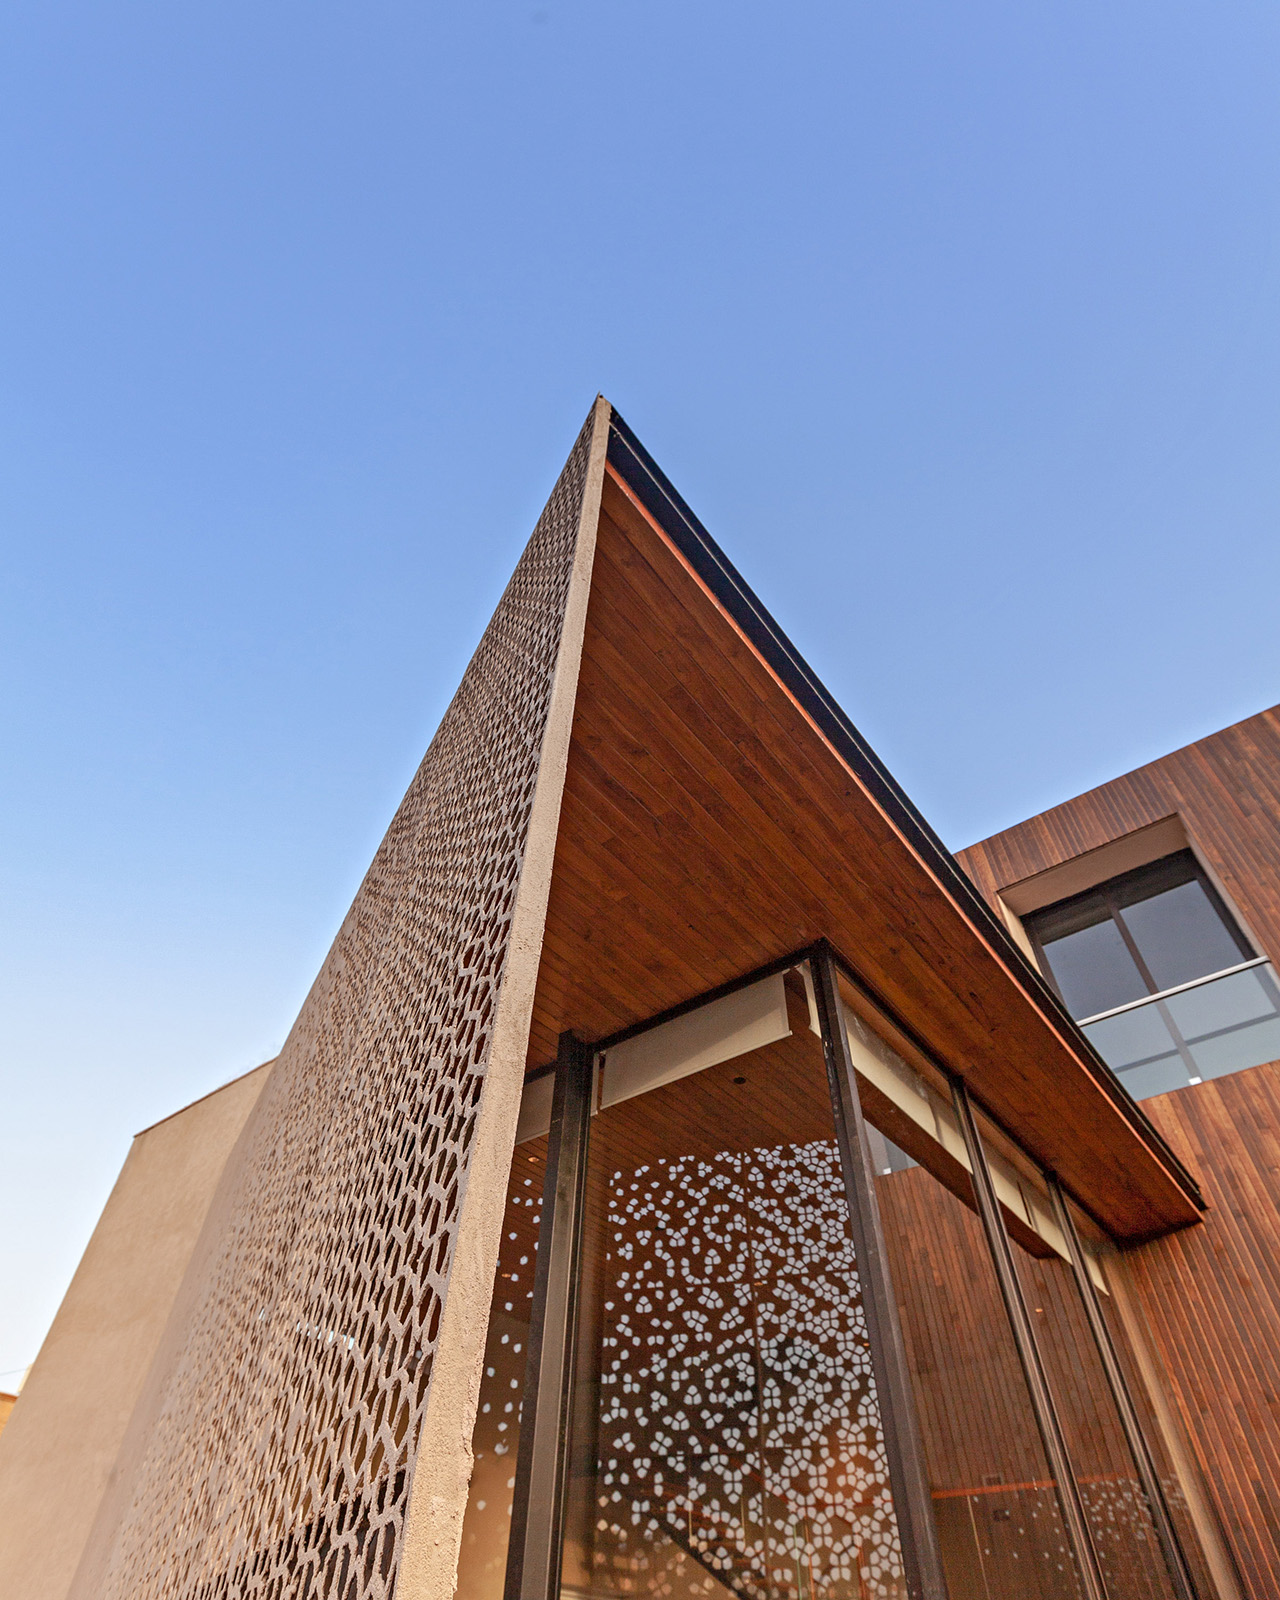 Custom filigree screen protects the structure from the blazing sun